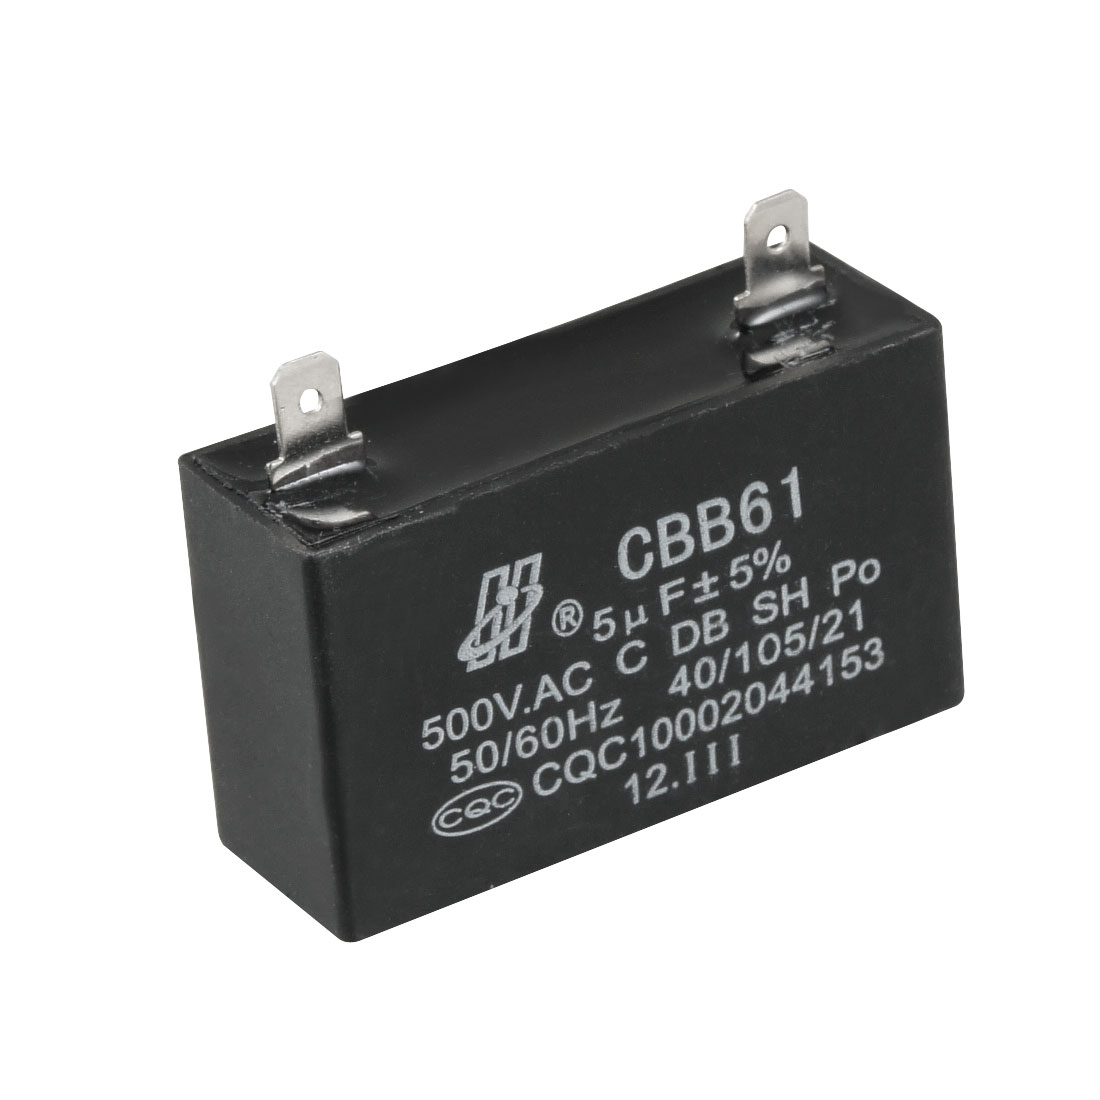 5uF AC 500V Metalized Polypropylene Film Motor Capacitor